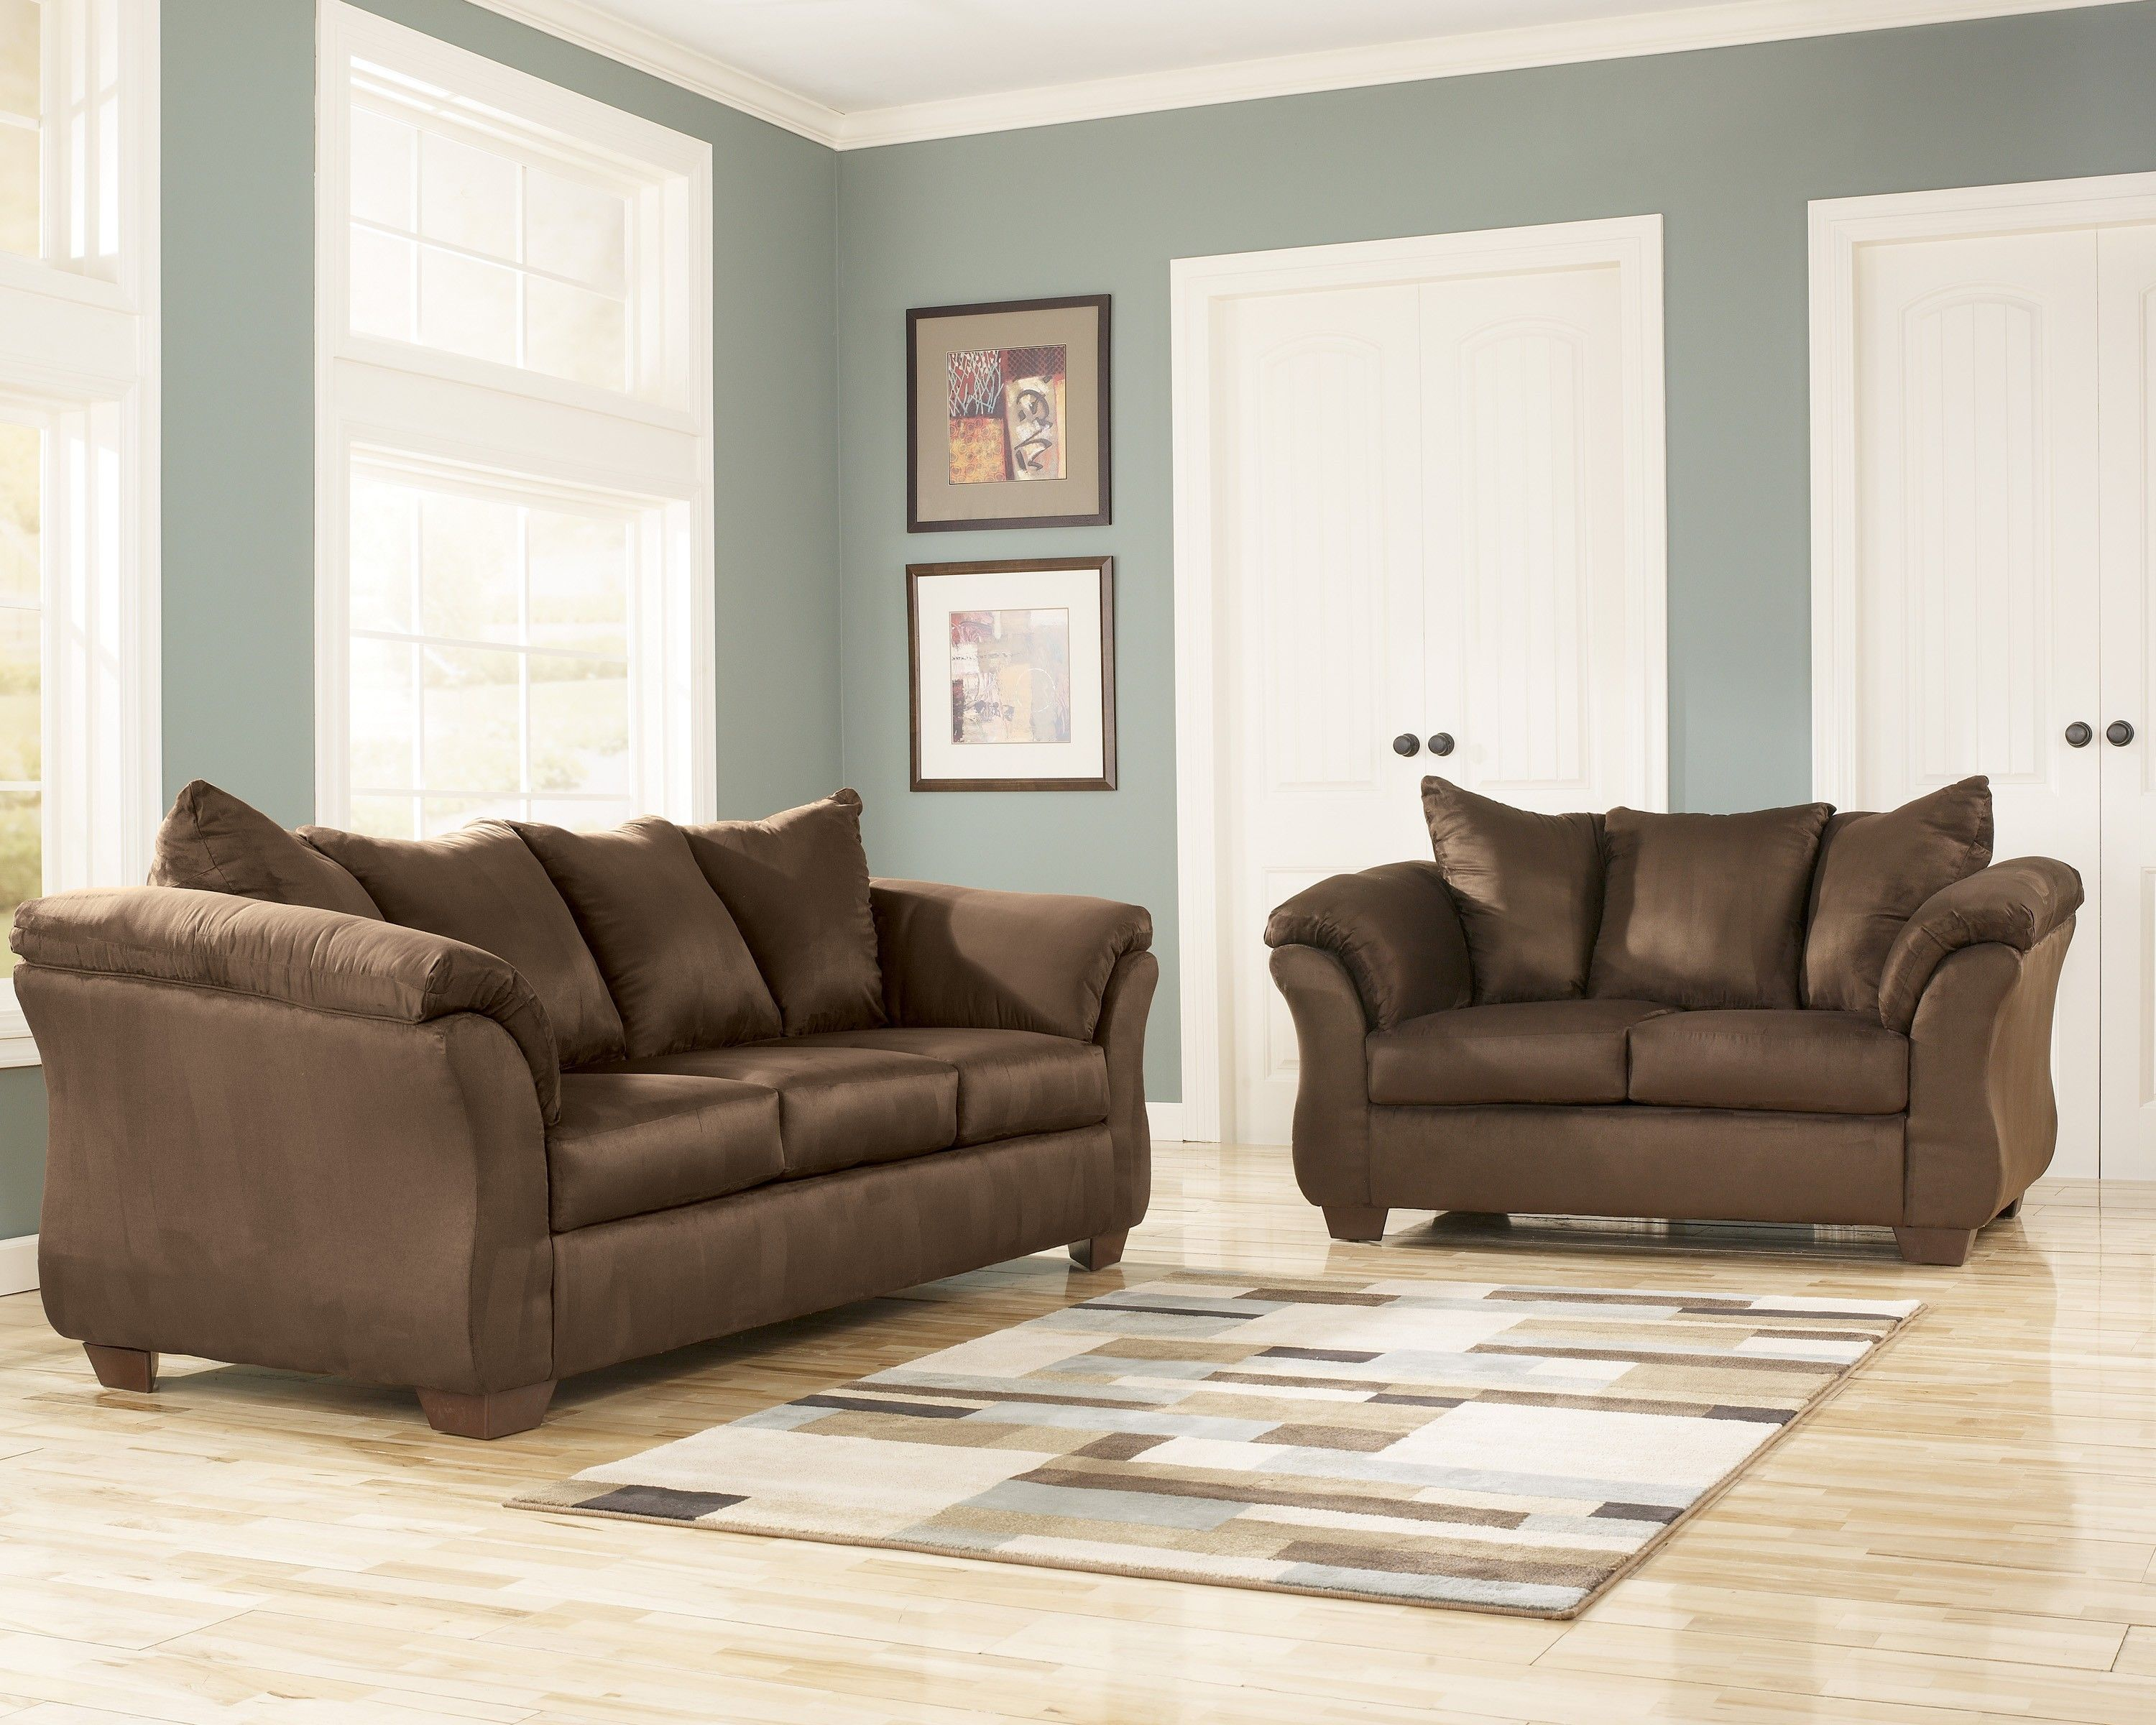 Darcy Cafe Sofa Loveseat Set Marjen Of Chicago Chicago - Marjen furniture